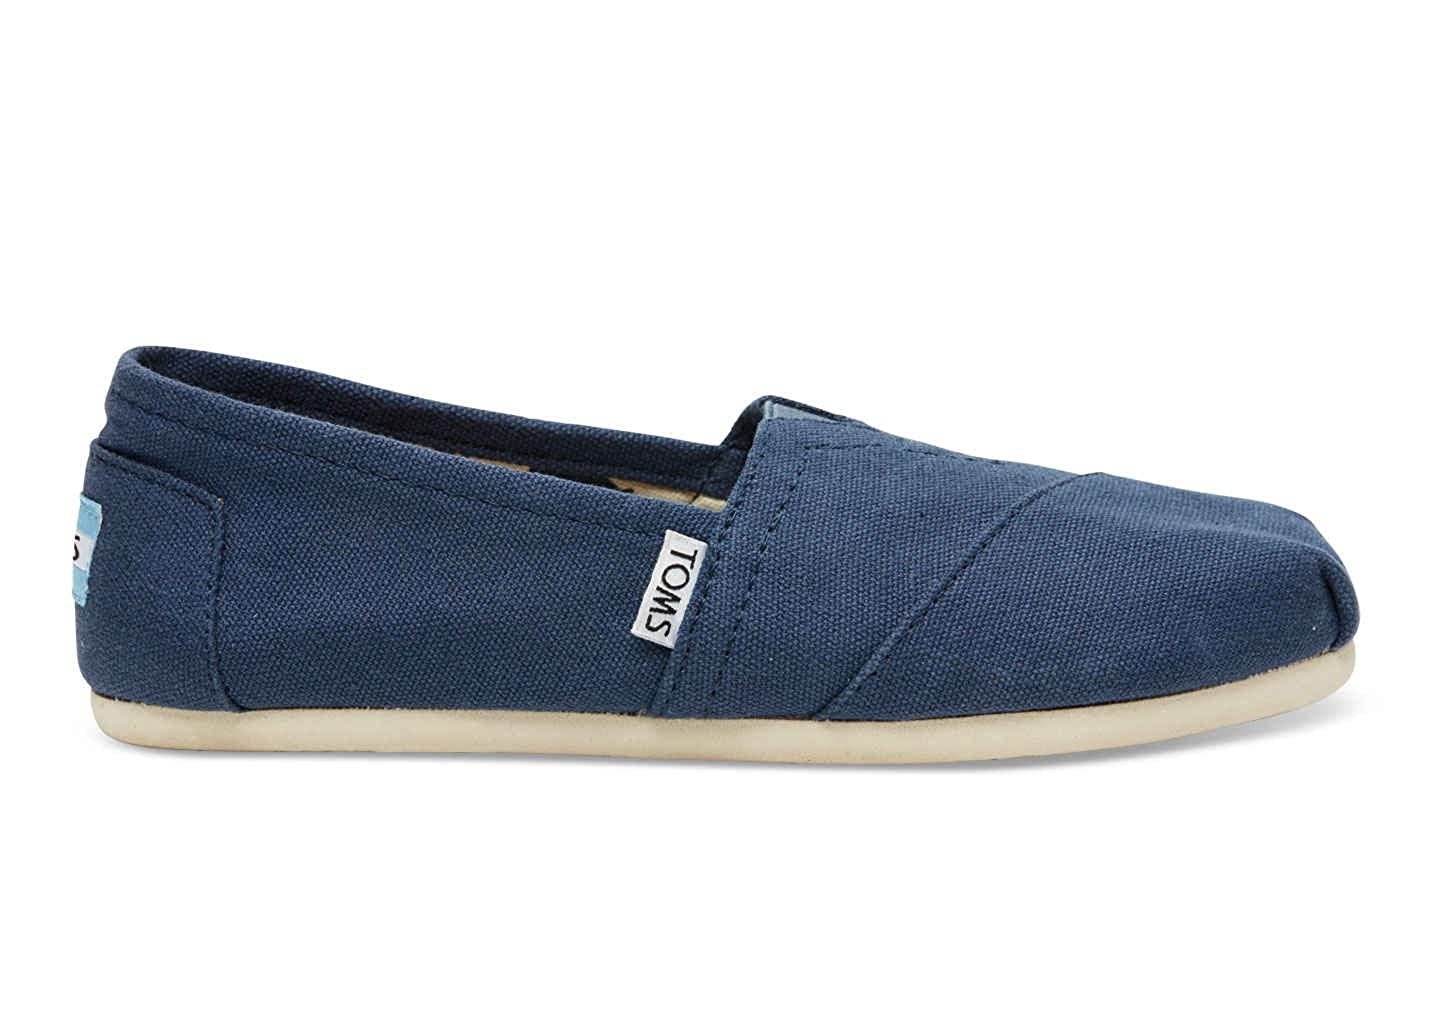 Amazon.com | Toms 001001B07-NVY: Womens Classic Flat Navy Alpargata Slip-On Casual Sneaker (5 B(M) US Women, Navy) | Loafers & Slip-Ons